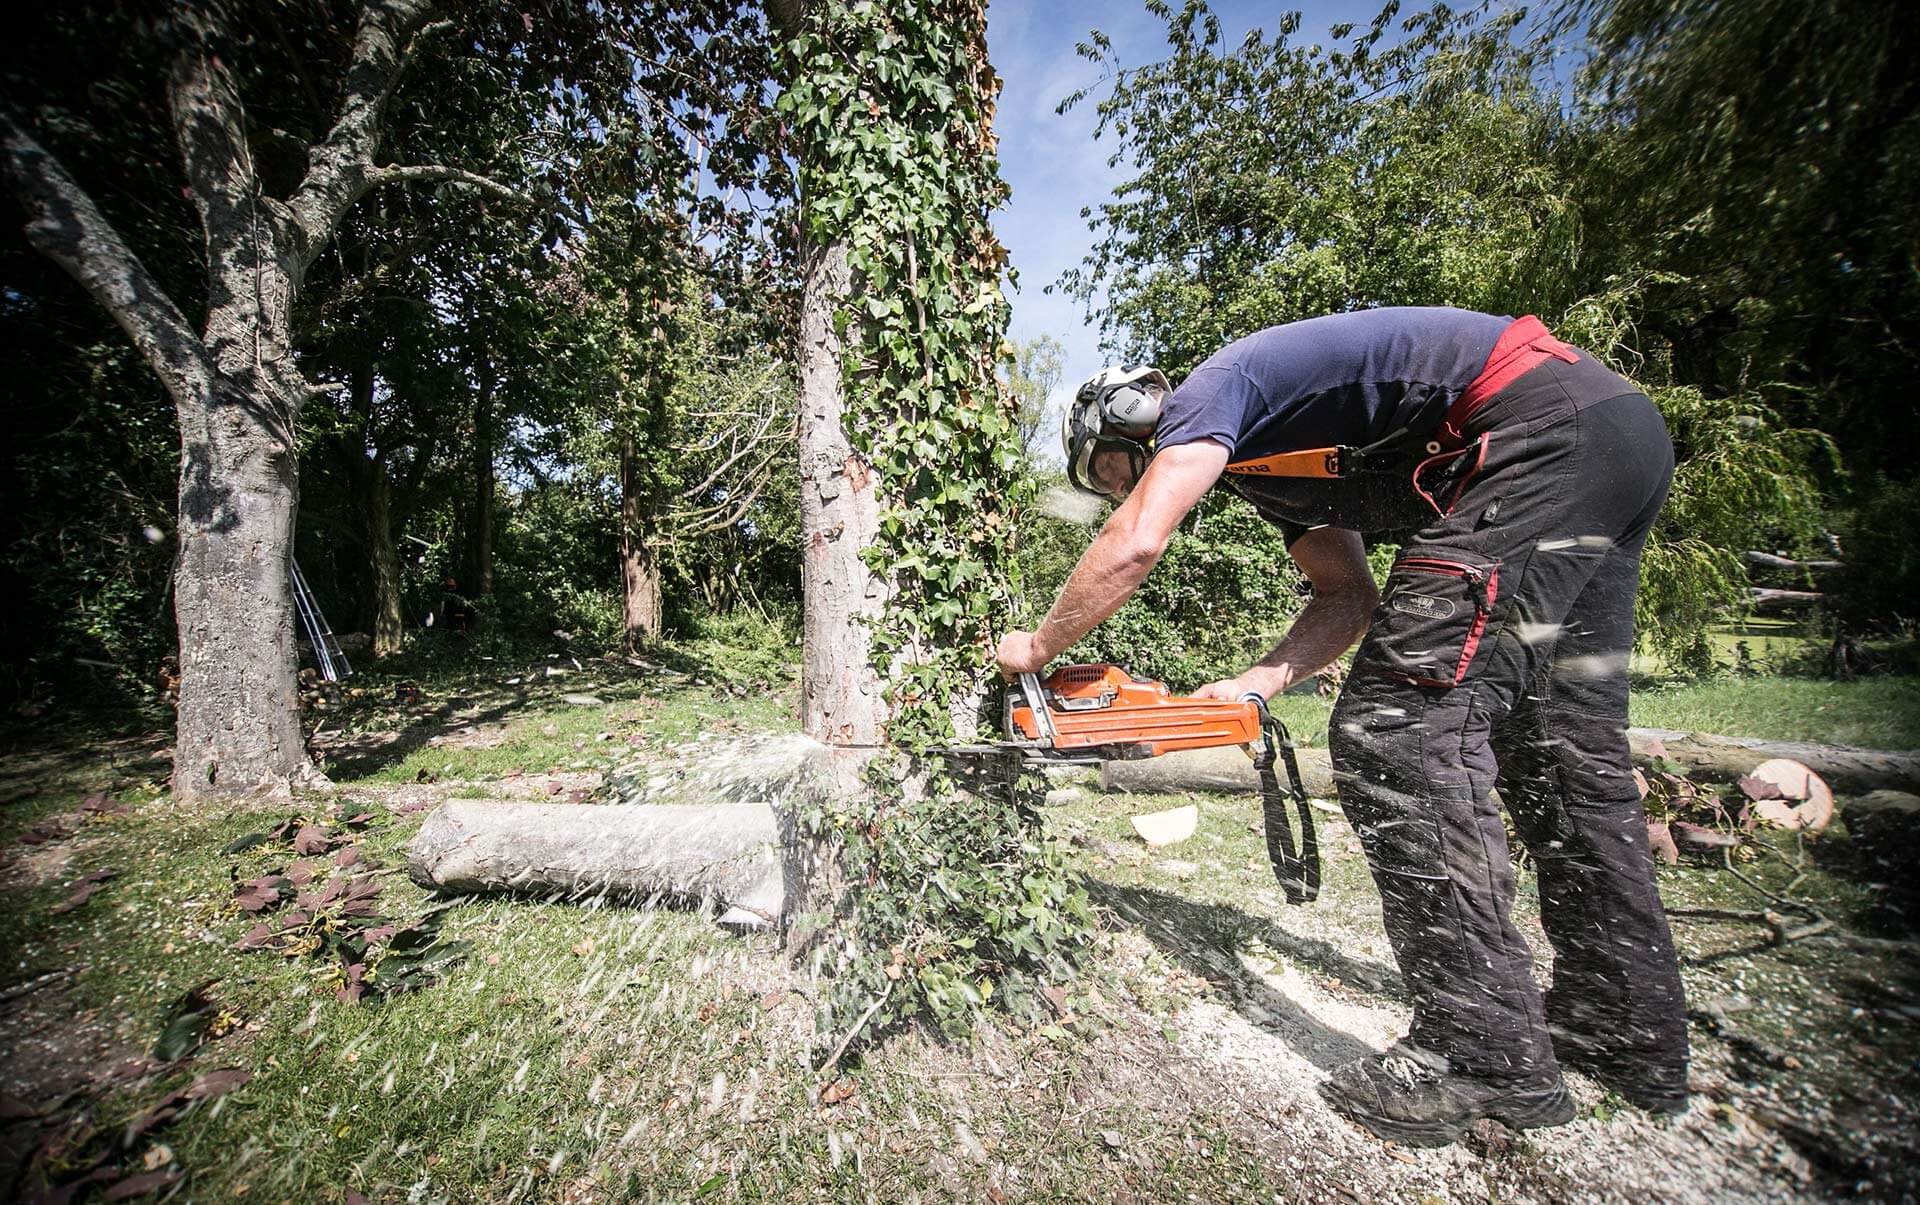 Stephen Bacon is a Qualified Tree surgeon working around chichester, Bracklesham, East, West Wittering, Sidlesham, Ham and West Sussex